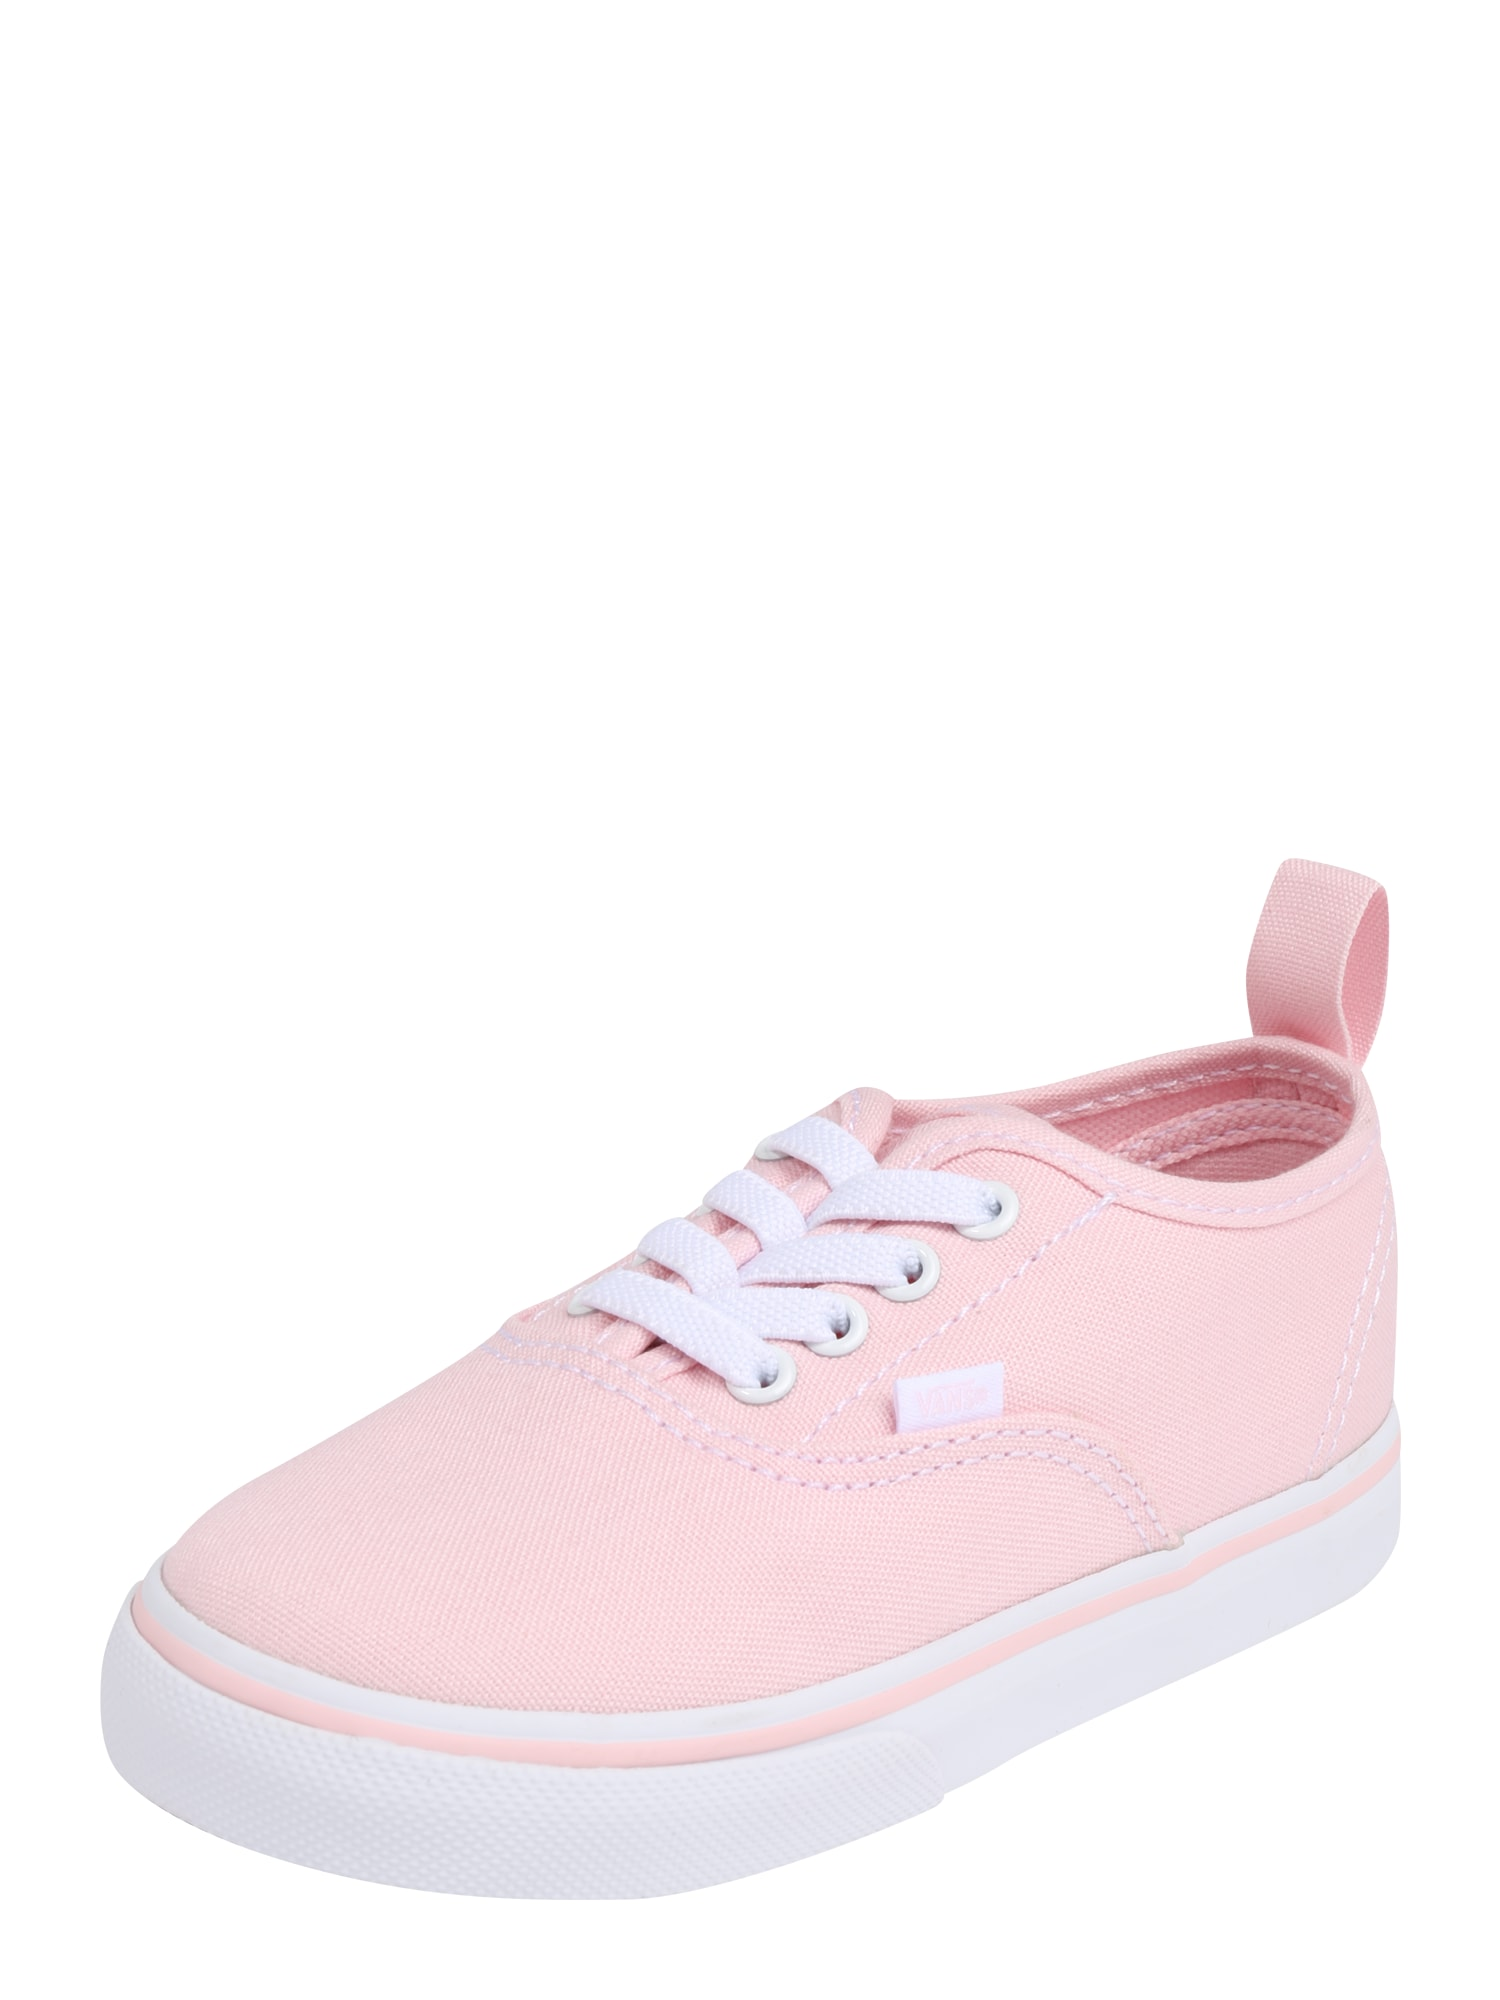 VANS, Jongens Sneakers 'Authentic Elastic', rosa